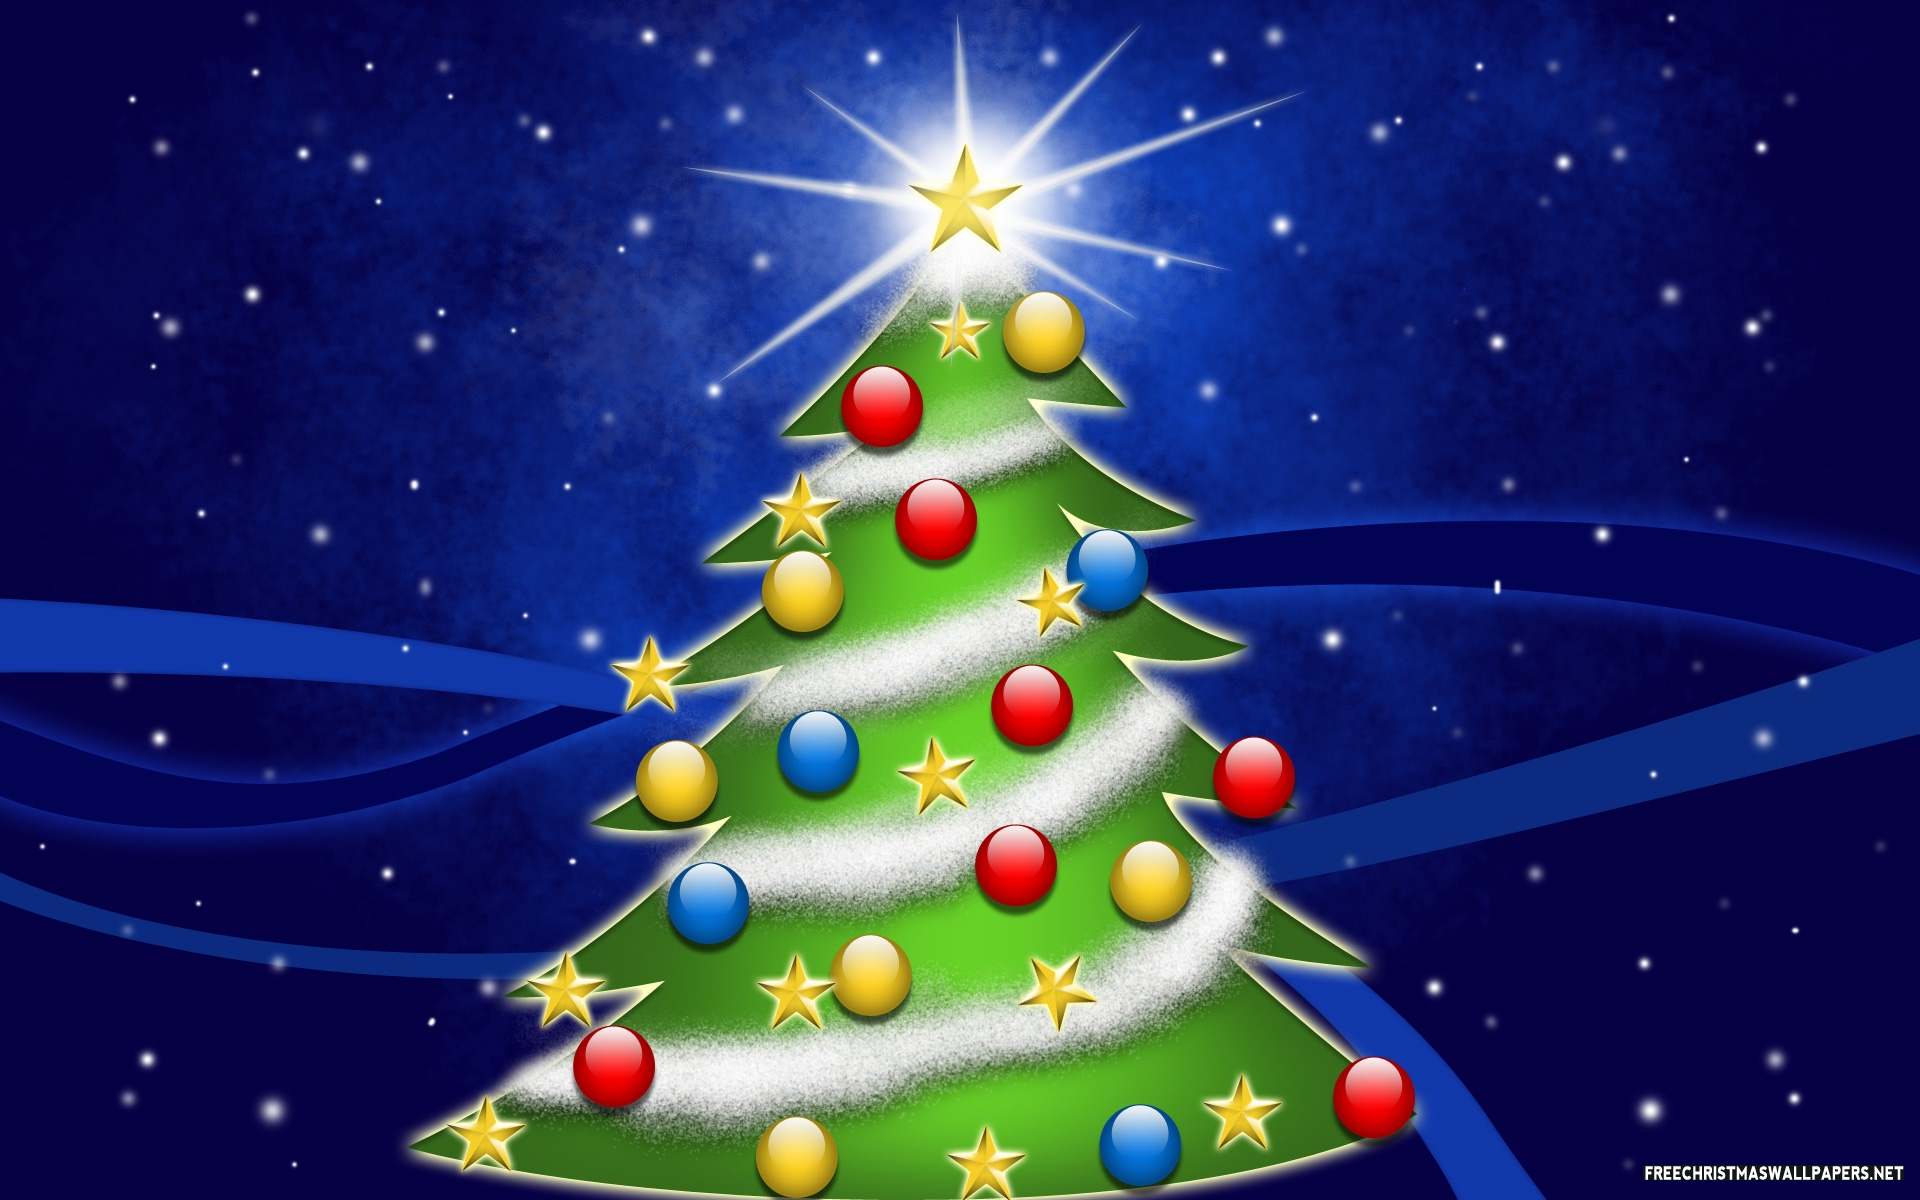 Christmas tree star bellswhat do they signify hyderabad this unchanging color represents the everlasting hope of mankind it points to high representing we should aim high christmas star biocorpaavc Images